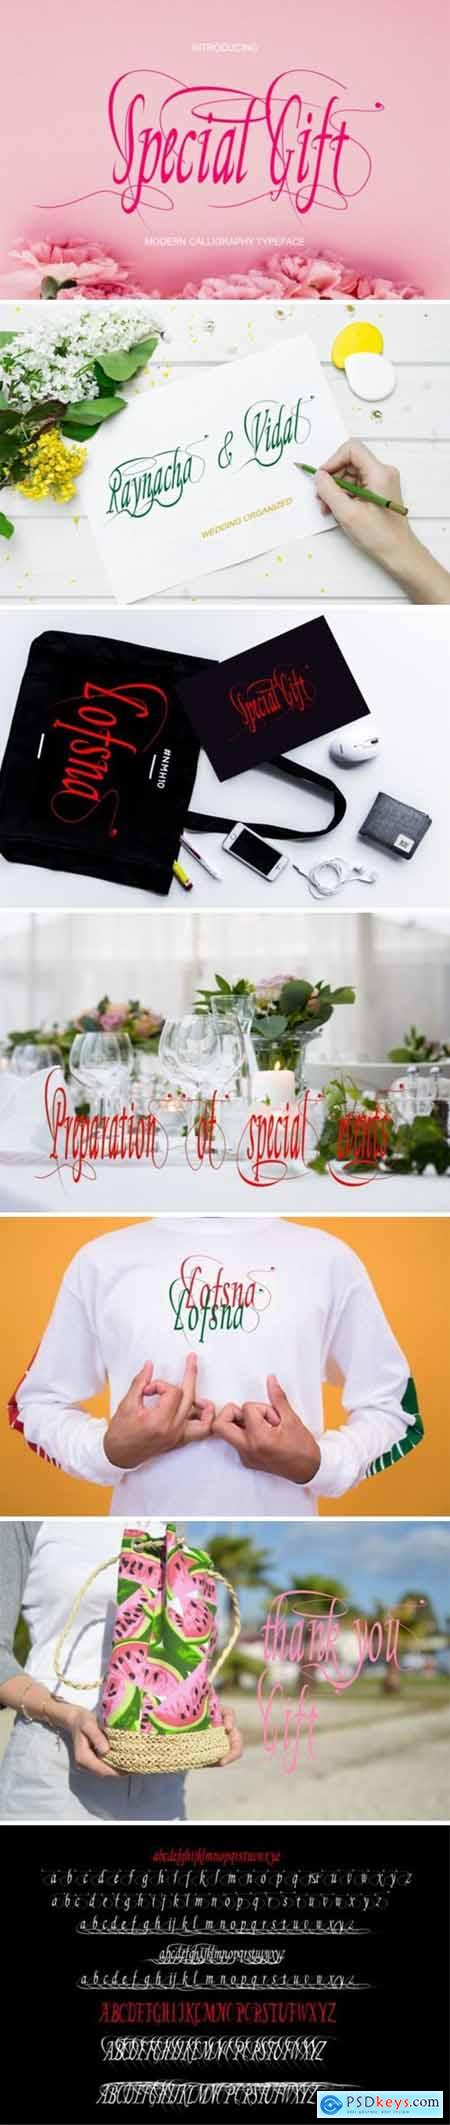 Special Gift Font